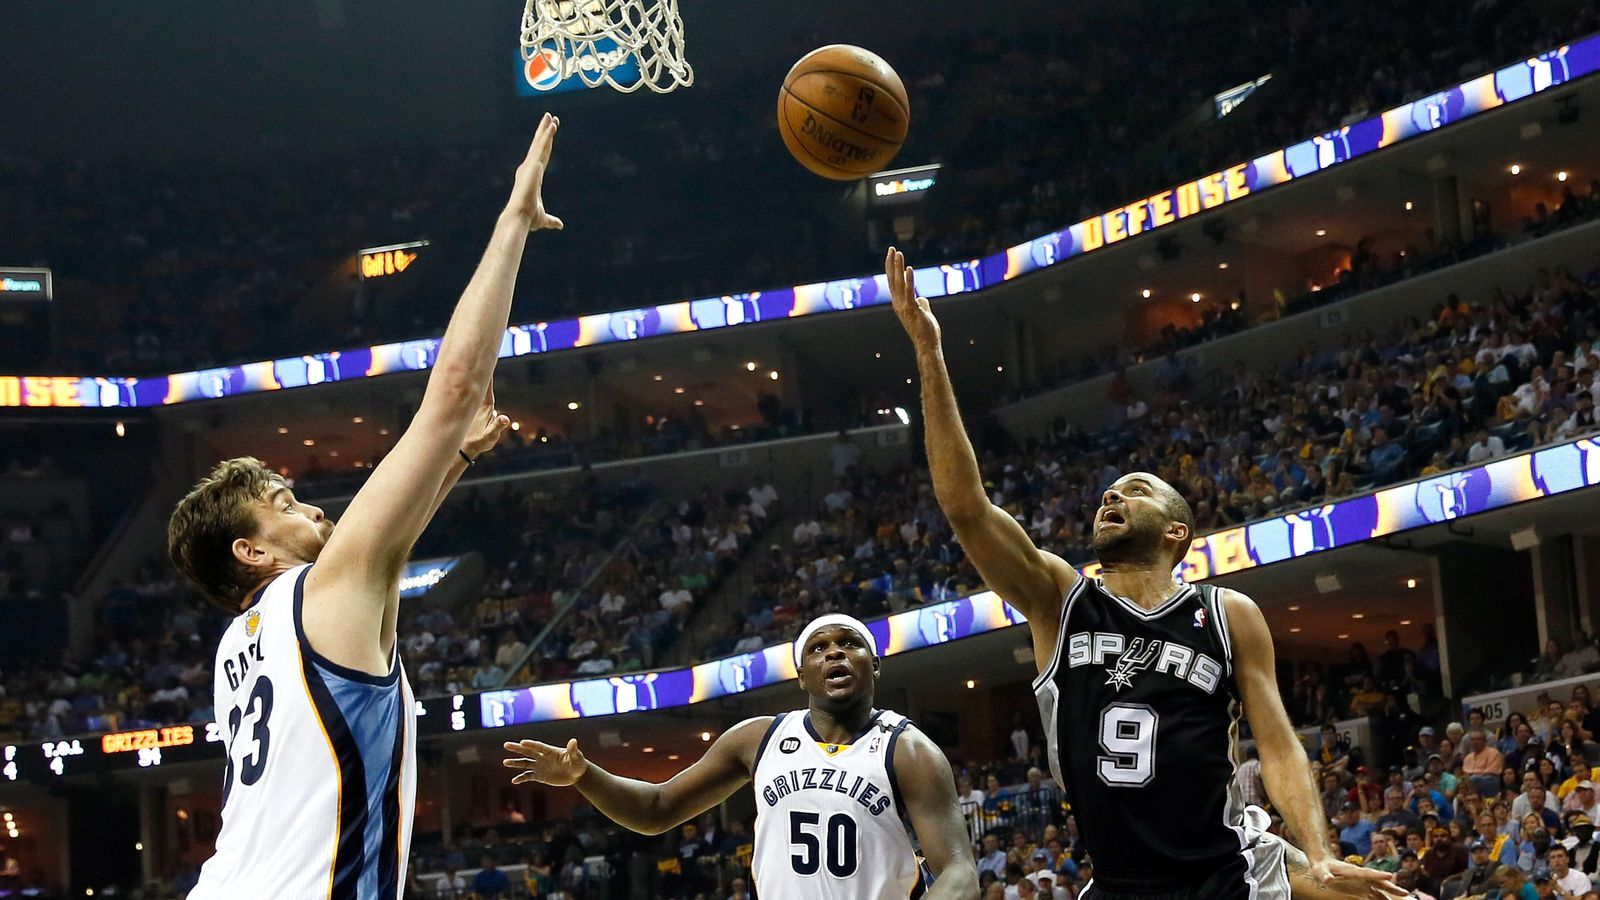 NBA Playoffs 2013, Spurs vs. Grizzlies Game 4: Tony Parker outshines all as San Antonio earns ...